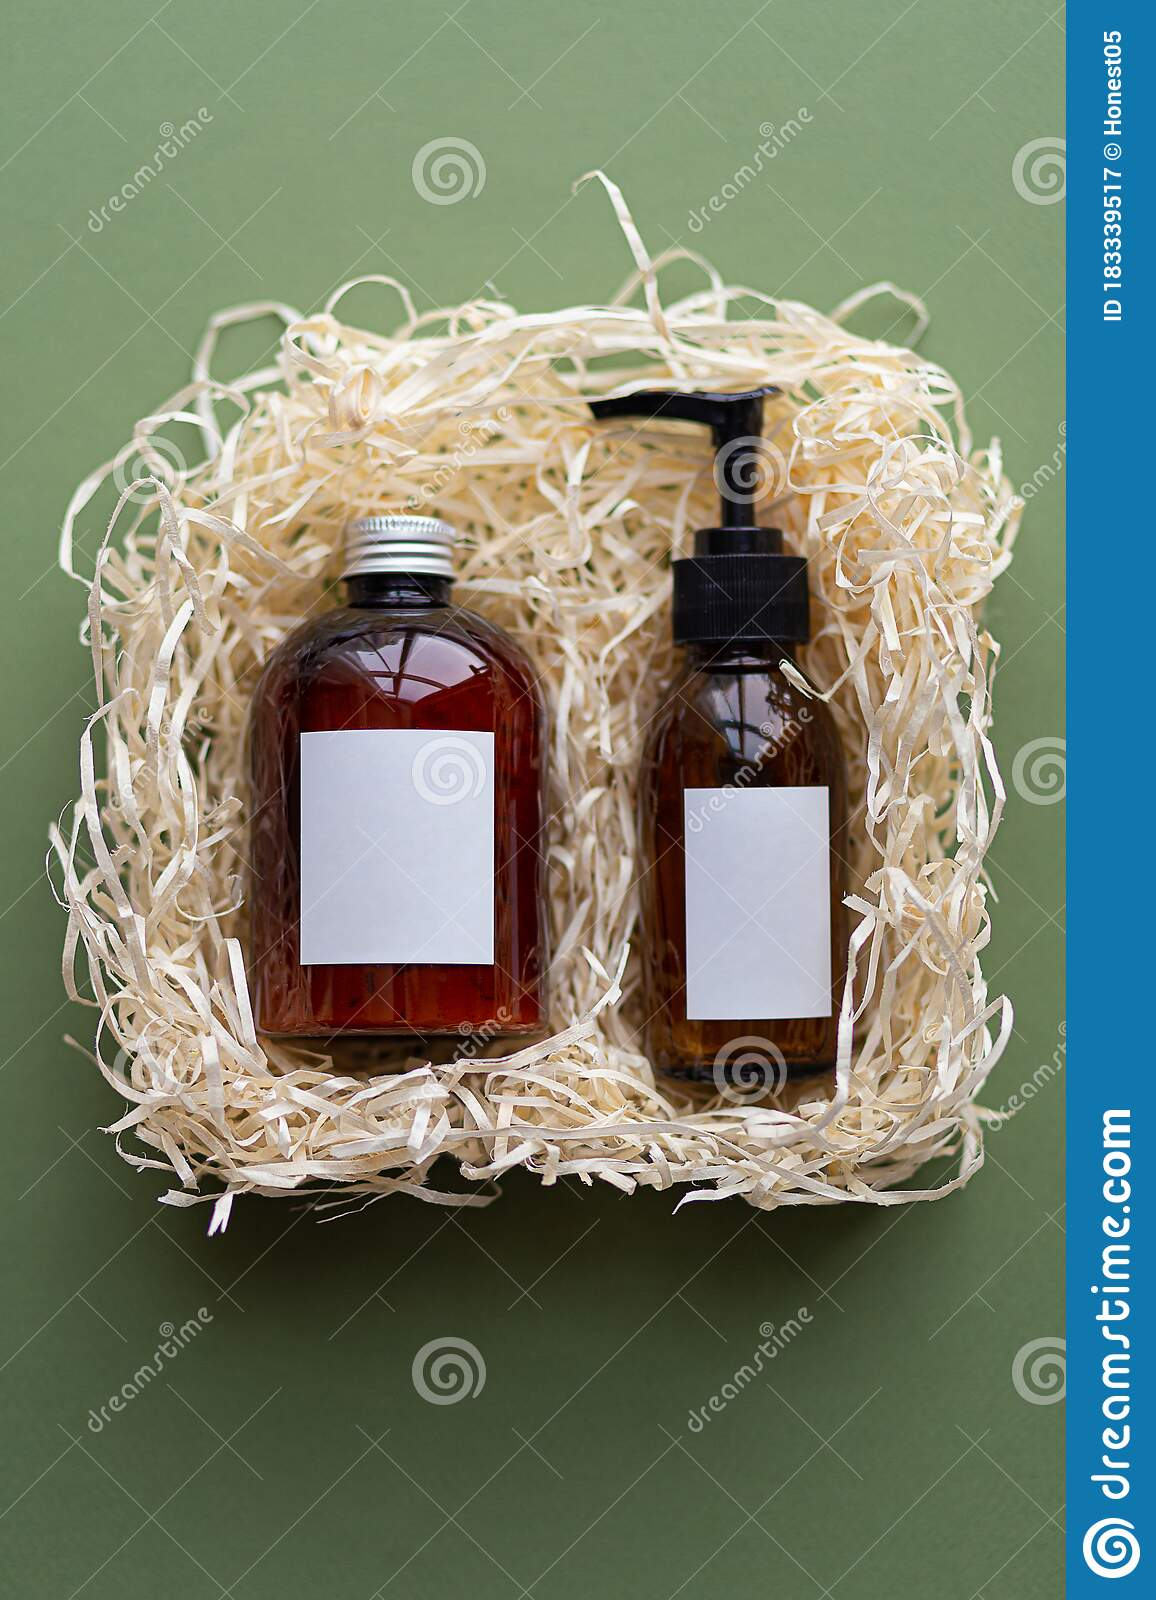 Natural Organic Spa Cosmetic Products Set With Dry Purple Leaves Top View Herbal Skincare Beauty Products On Green Background Stock Image Image Of Gift Natural 183339517